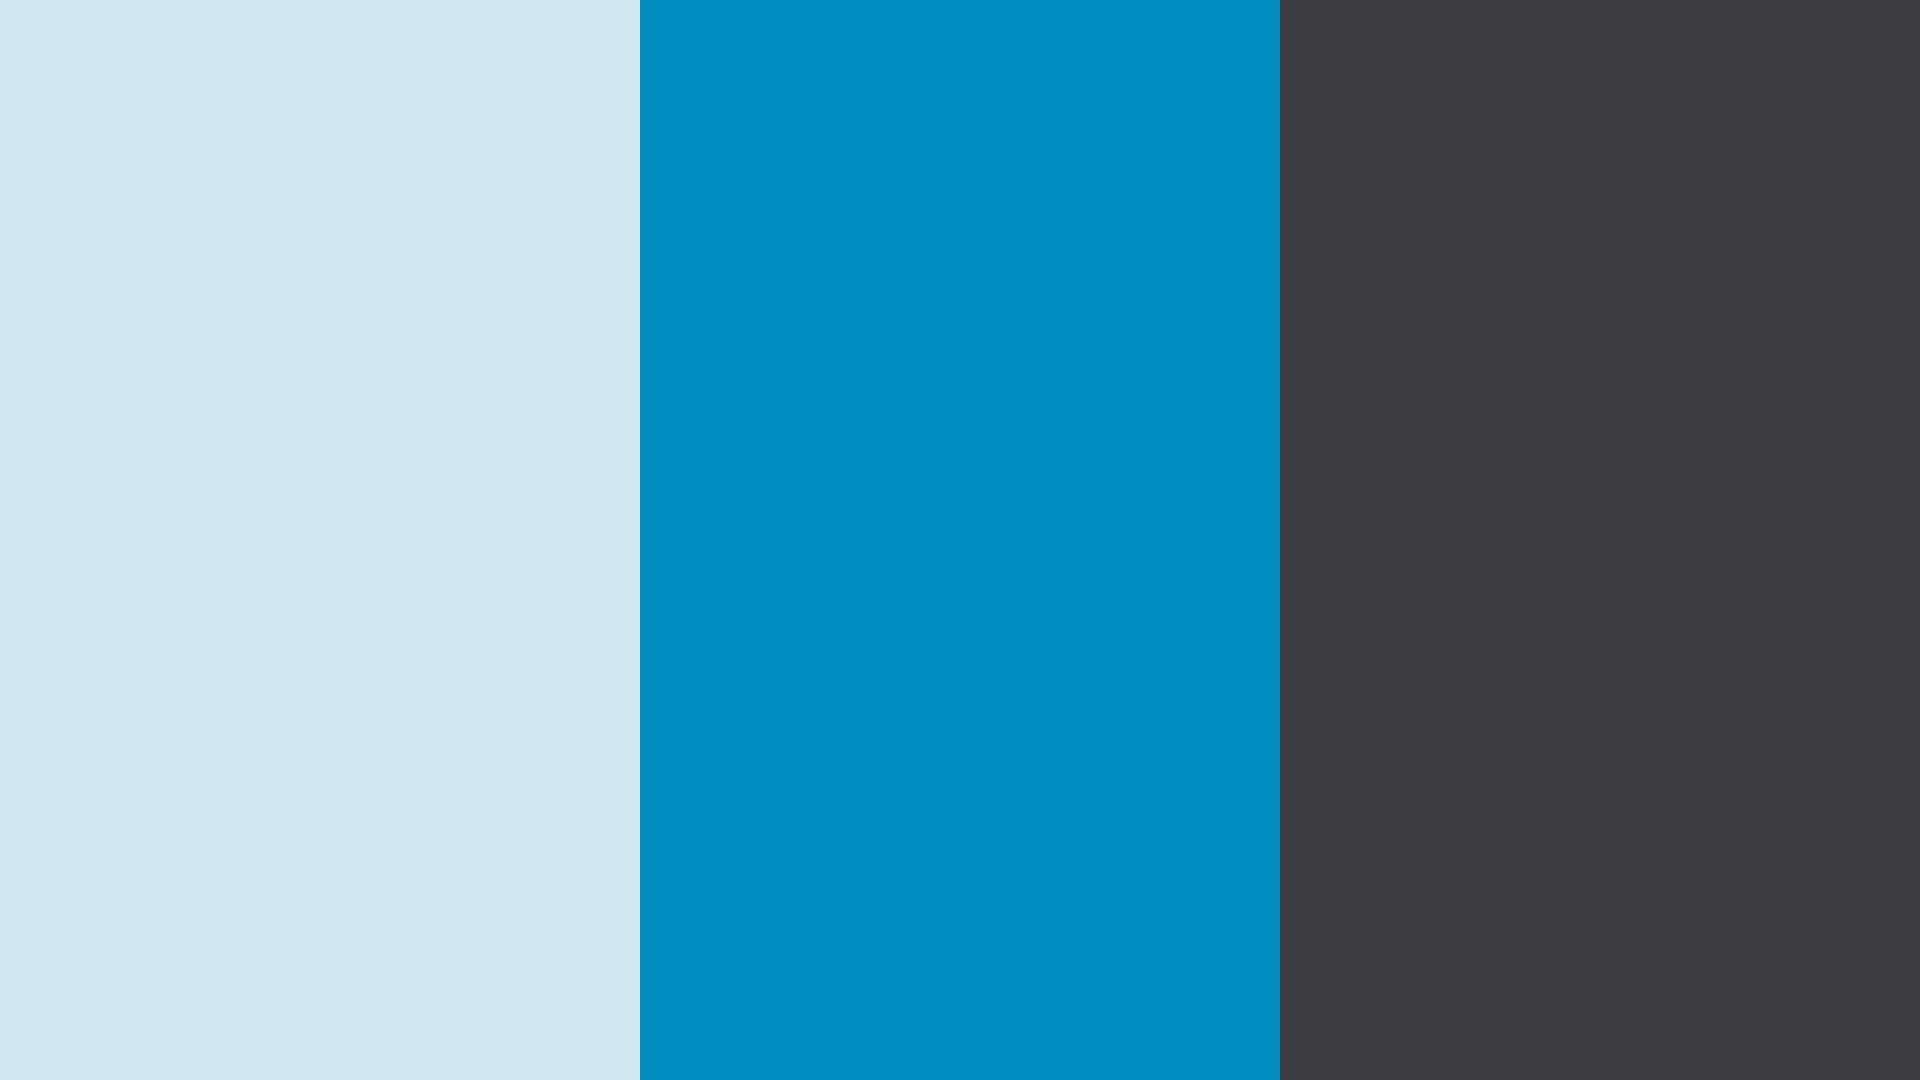 Hermes Group Logo Color Palette